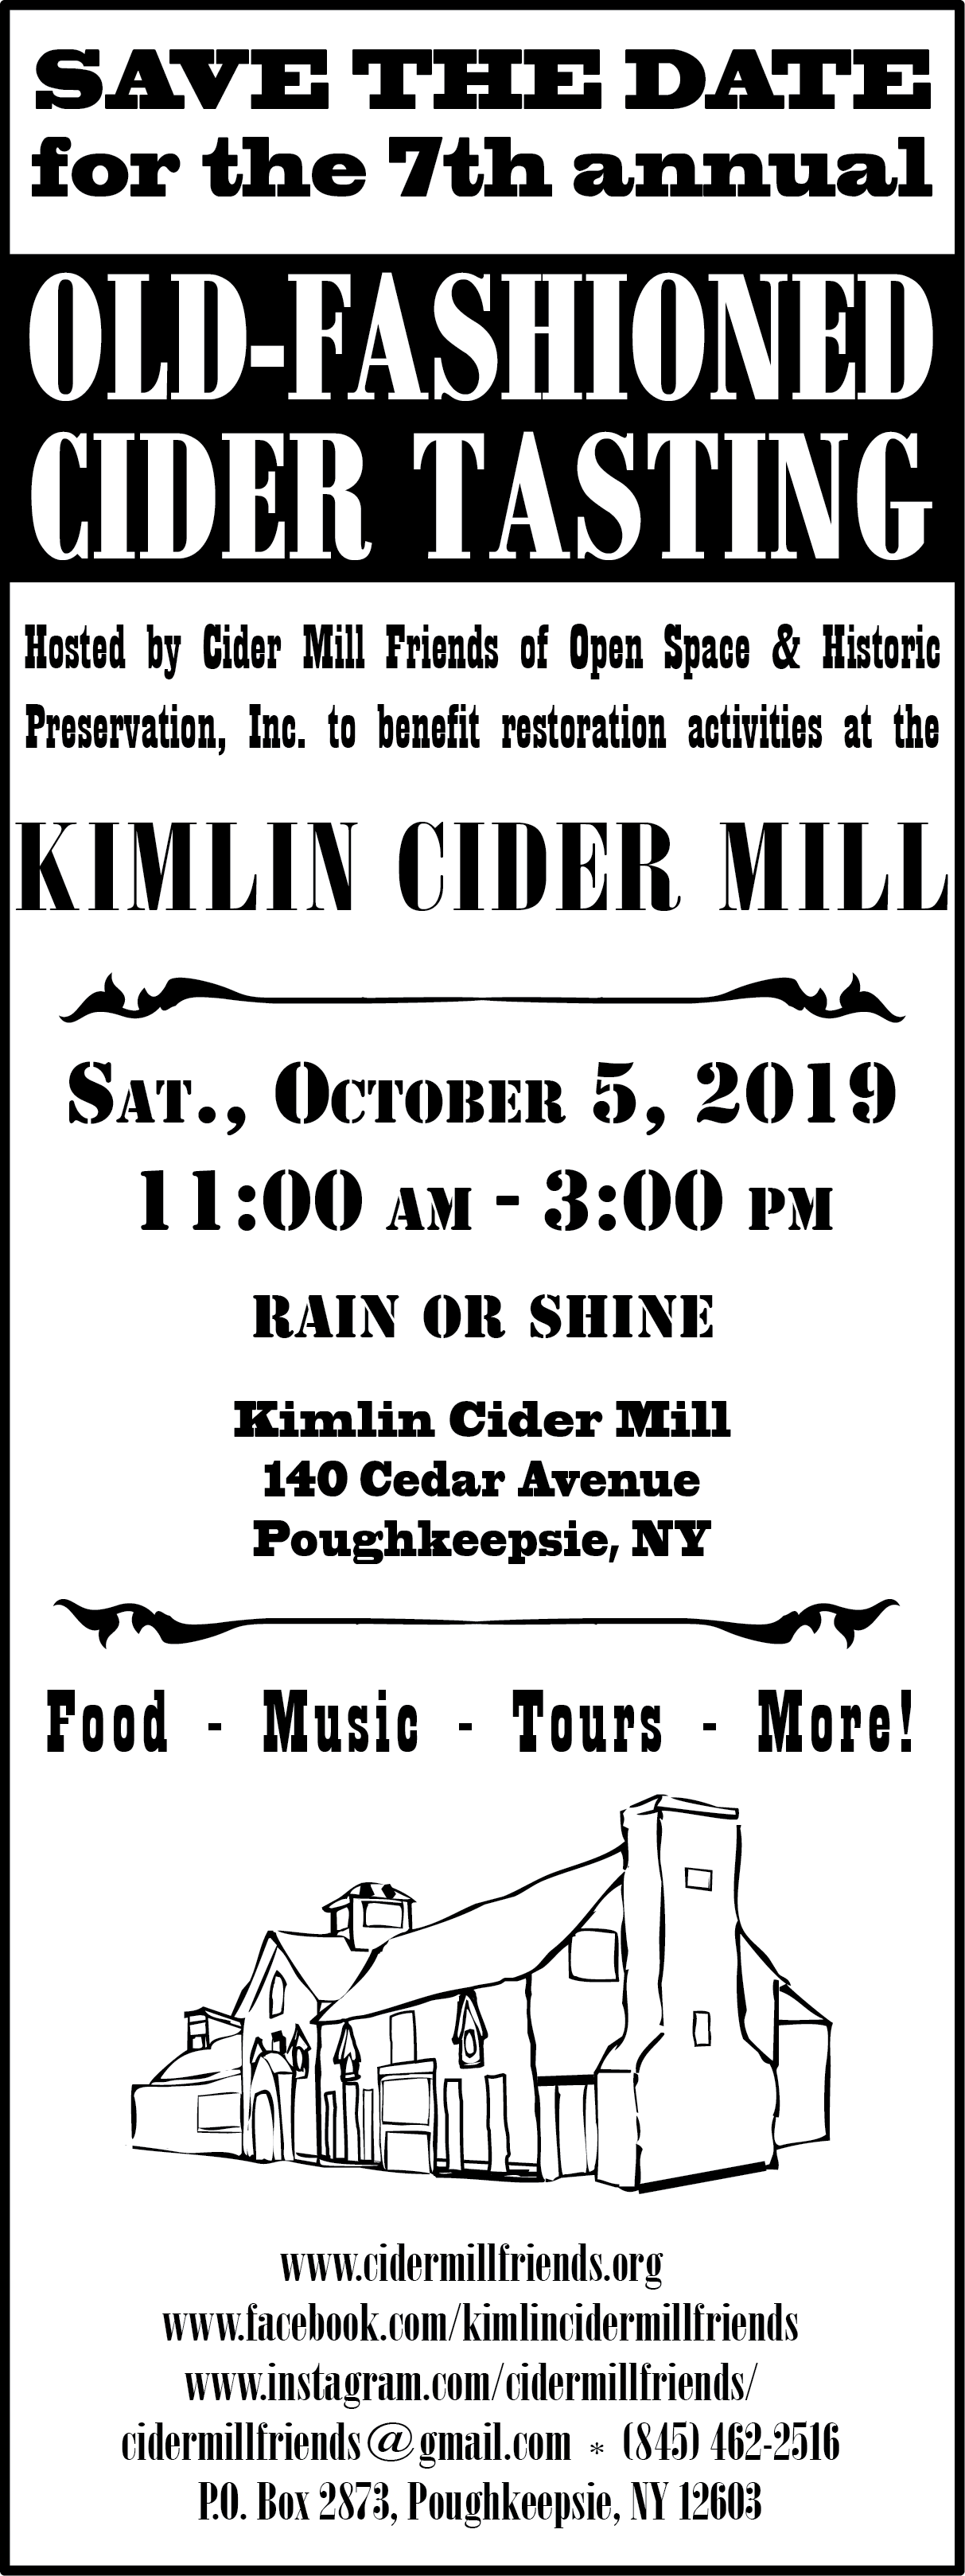 Cider Tasing Event Save the Date 2019